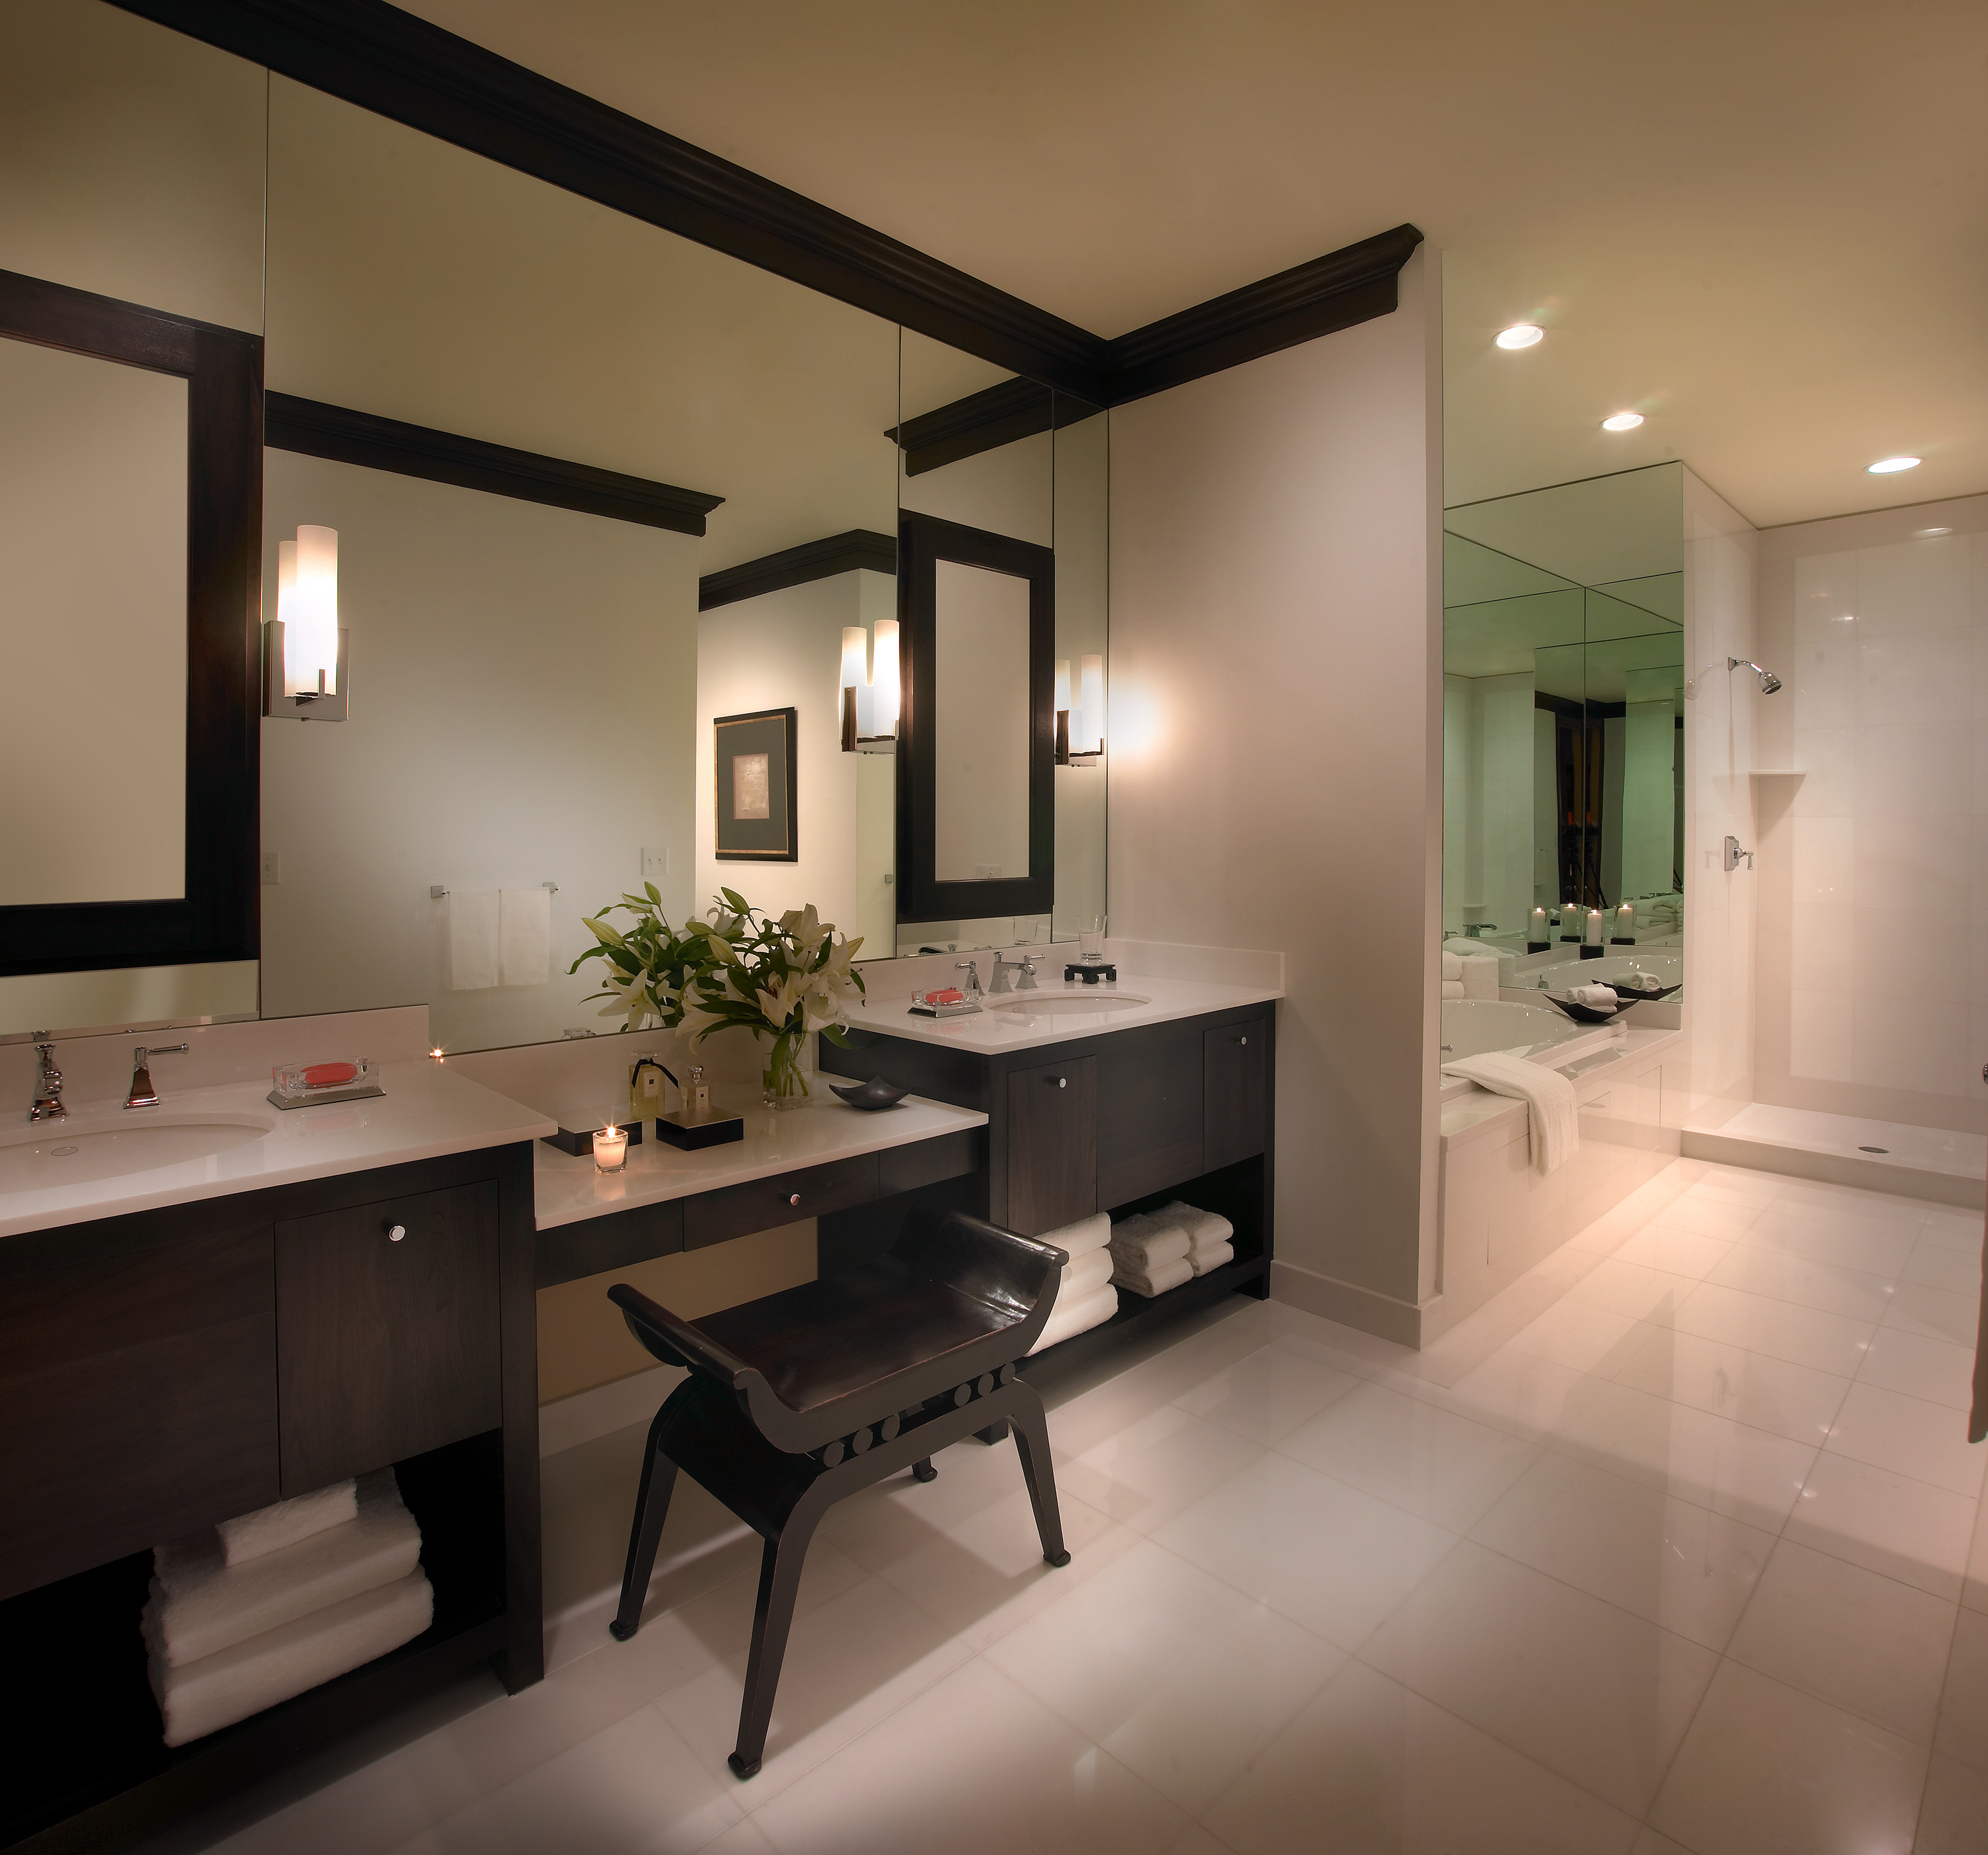 4 clear signs you need bathroom remodeling kitchen remodel cincinnati bathroom remodeling